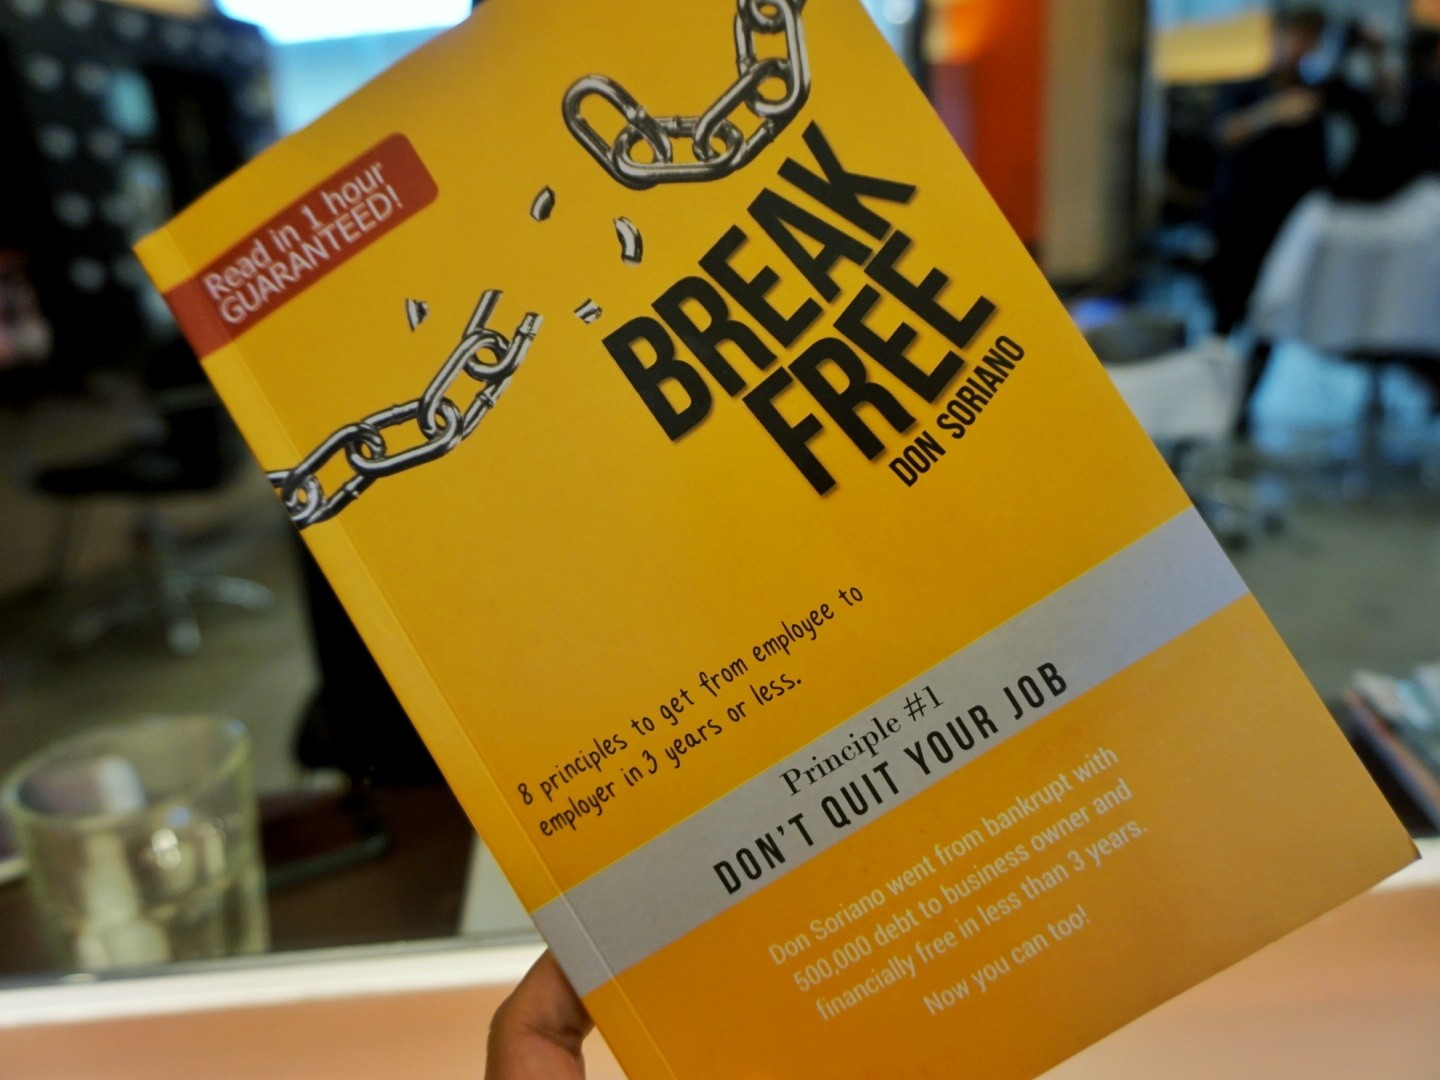 Book Review: Break Free by Don Soriano